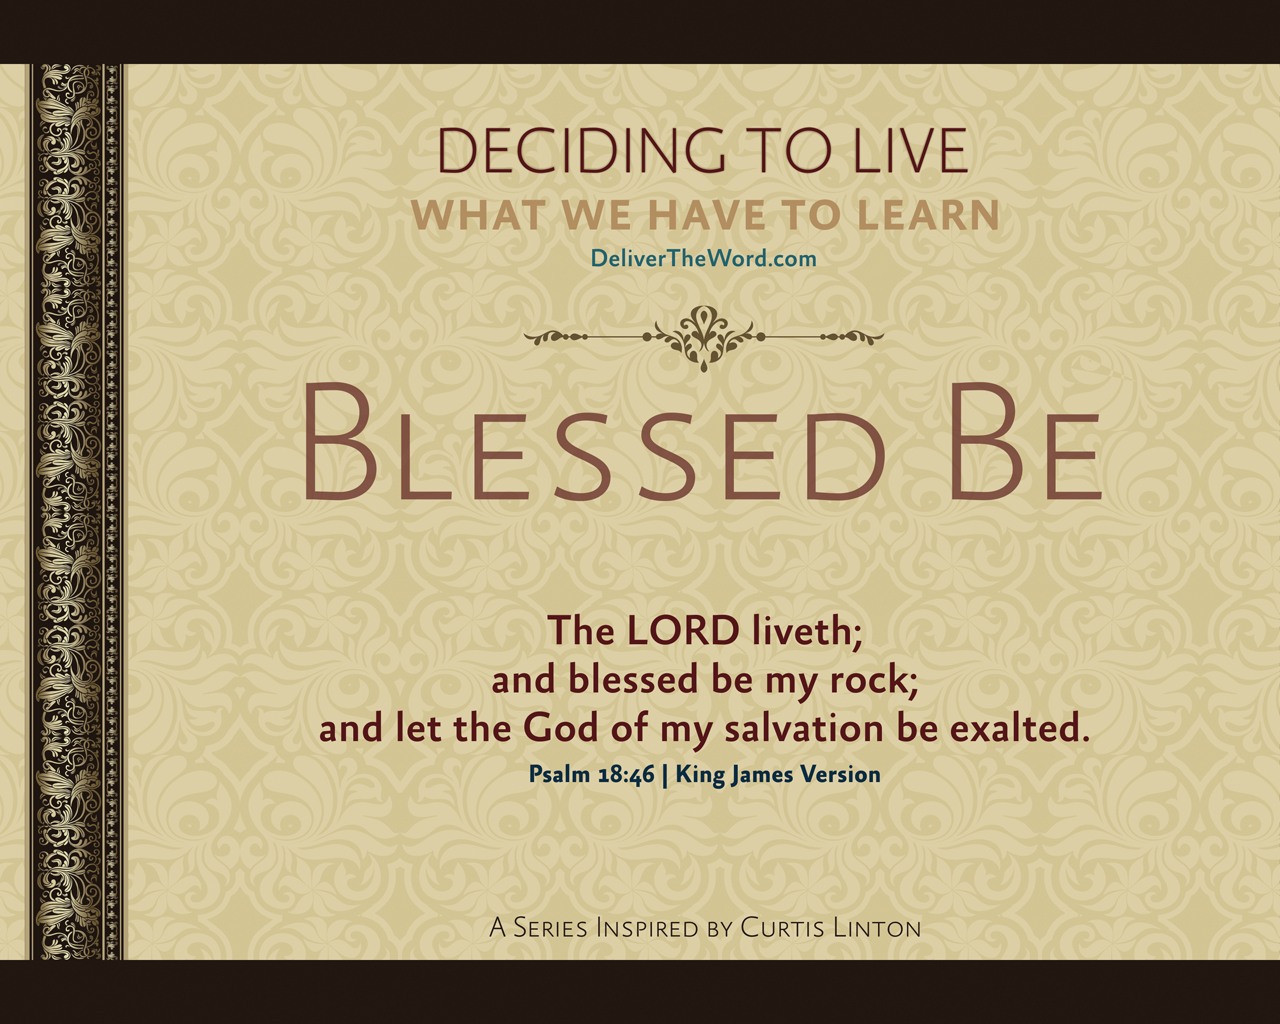 Blessed Be – Deciding to Live